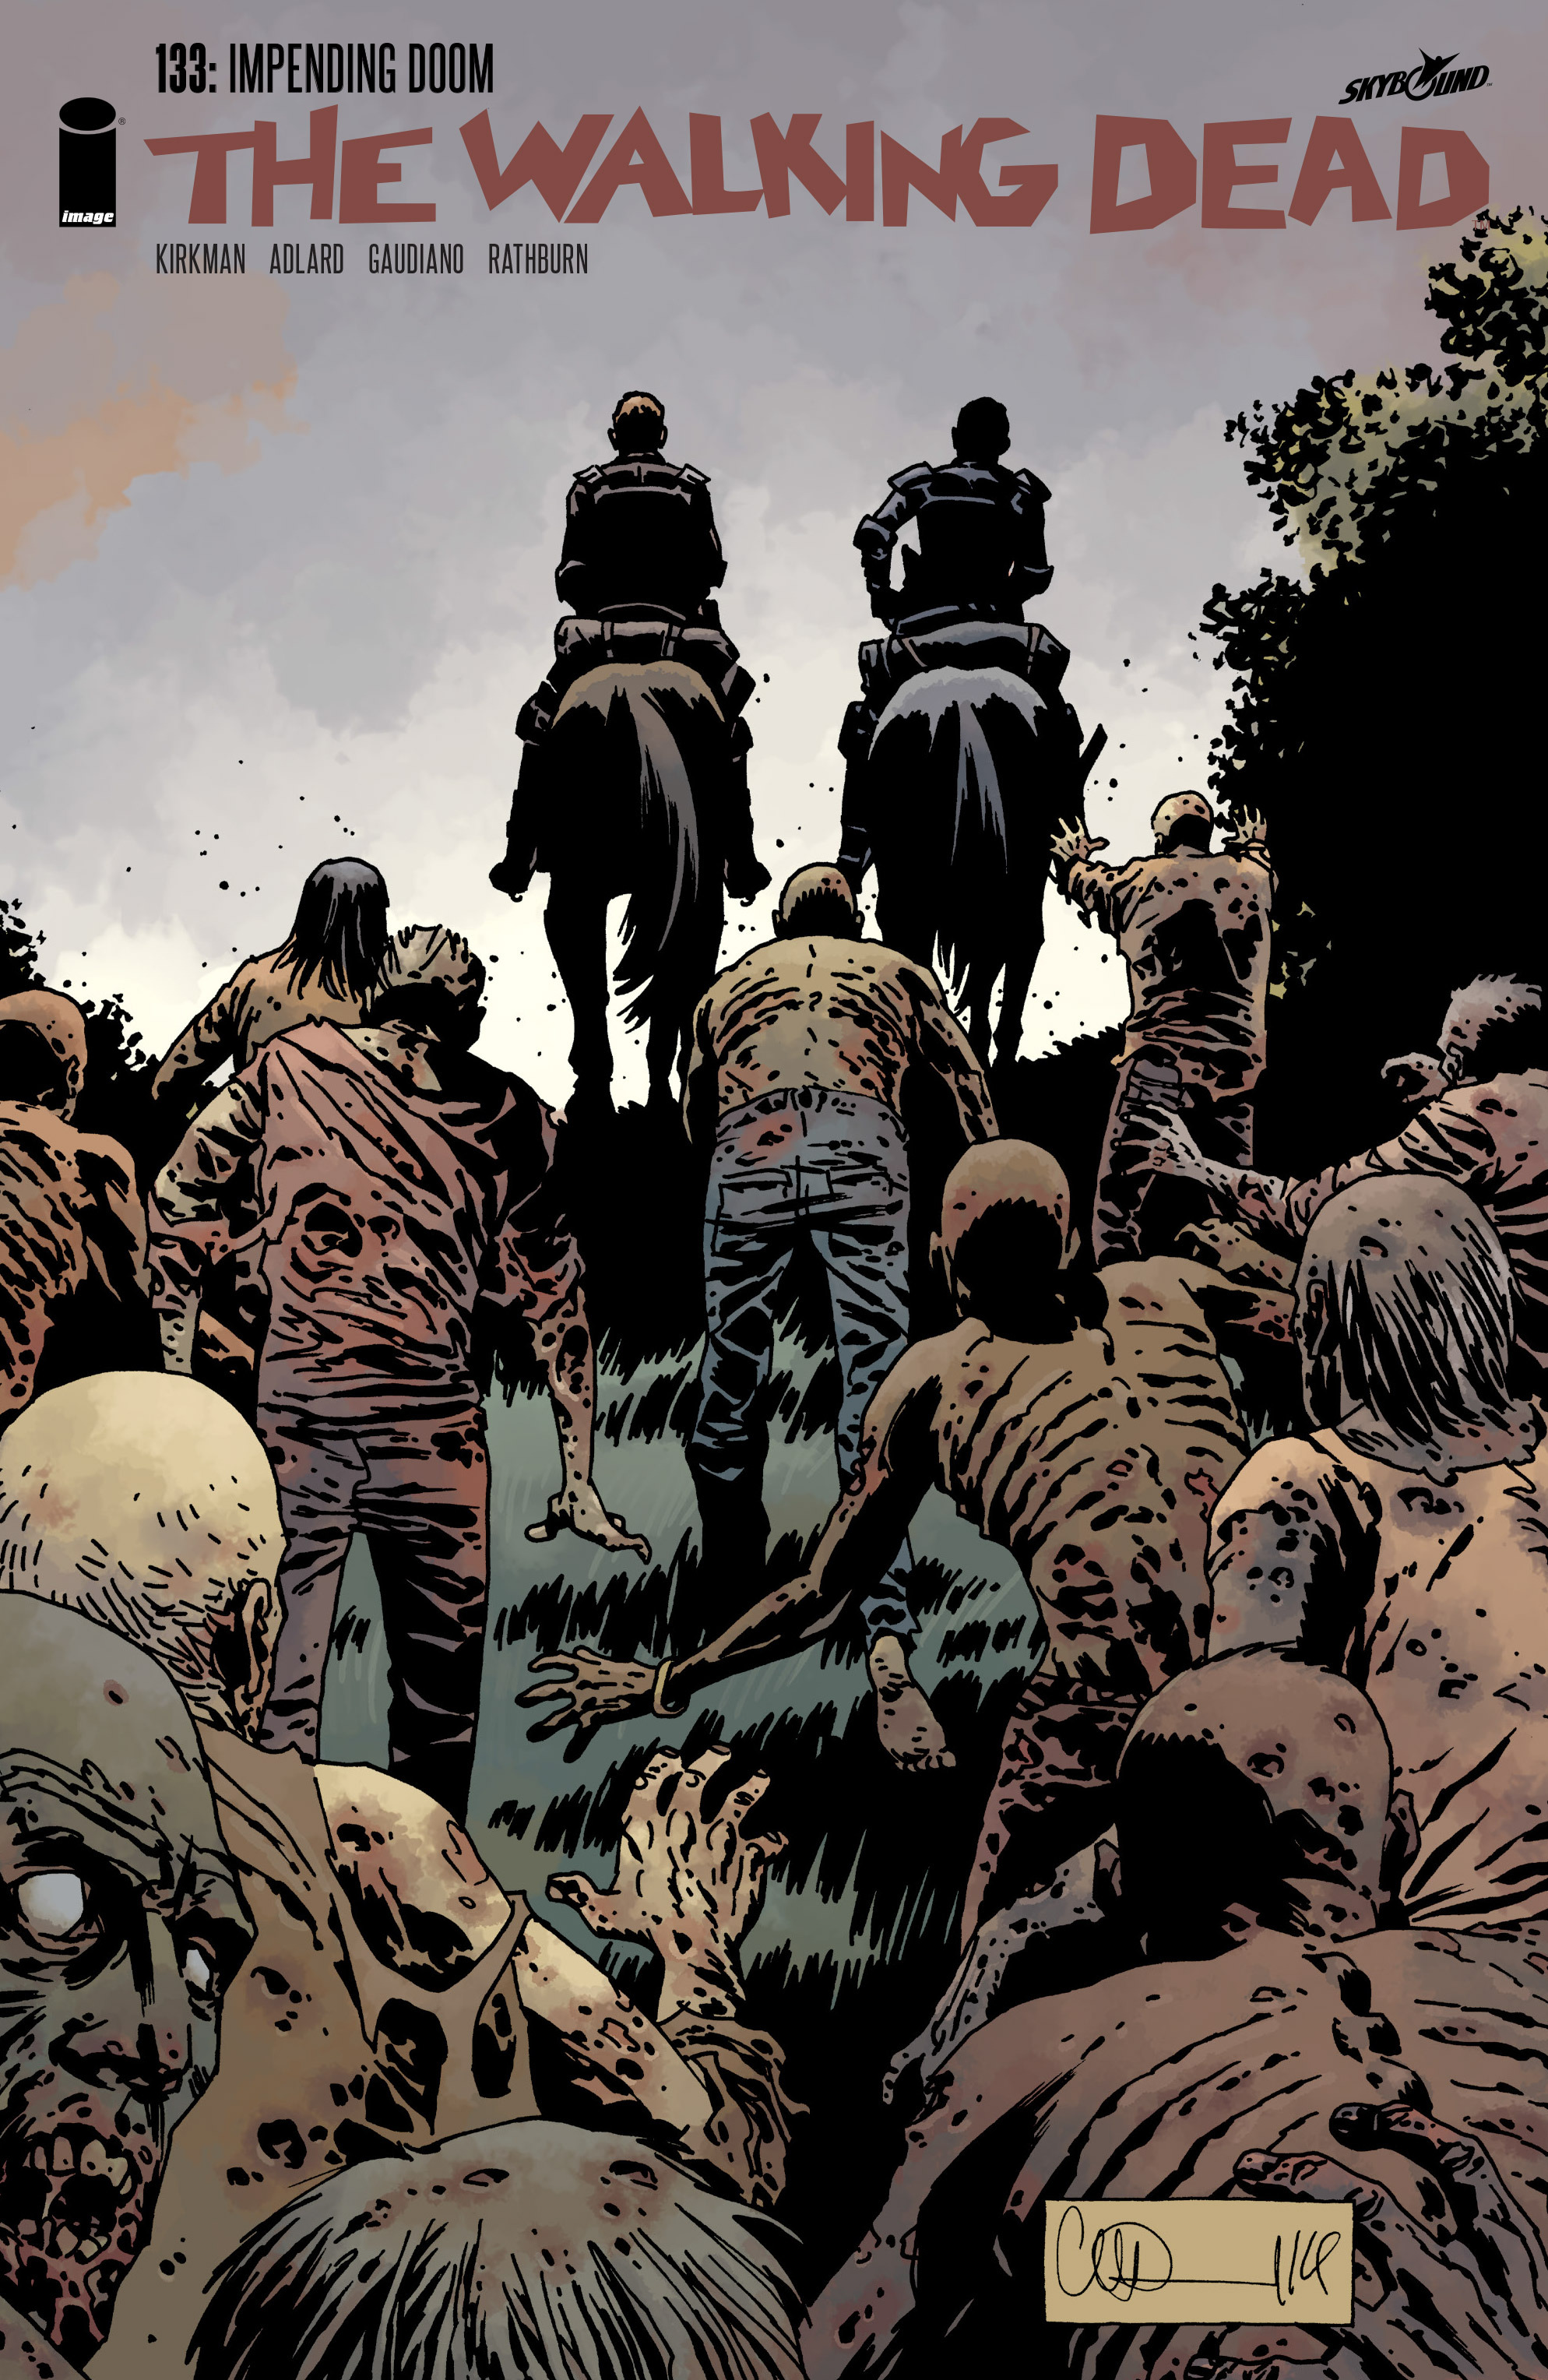 The Walking Dead Issue #133 Page 1